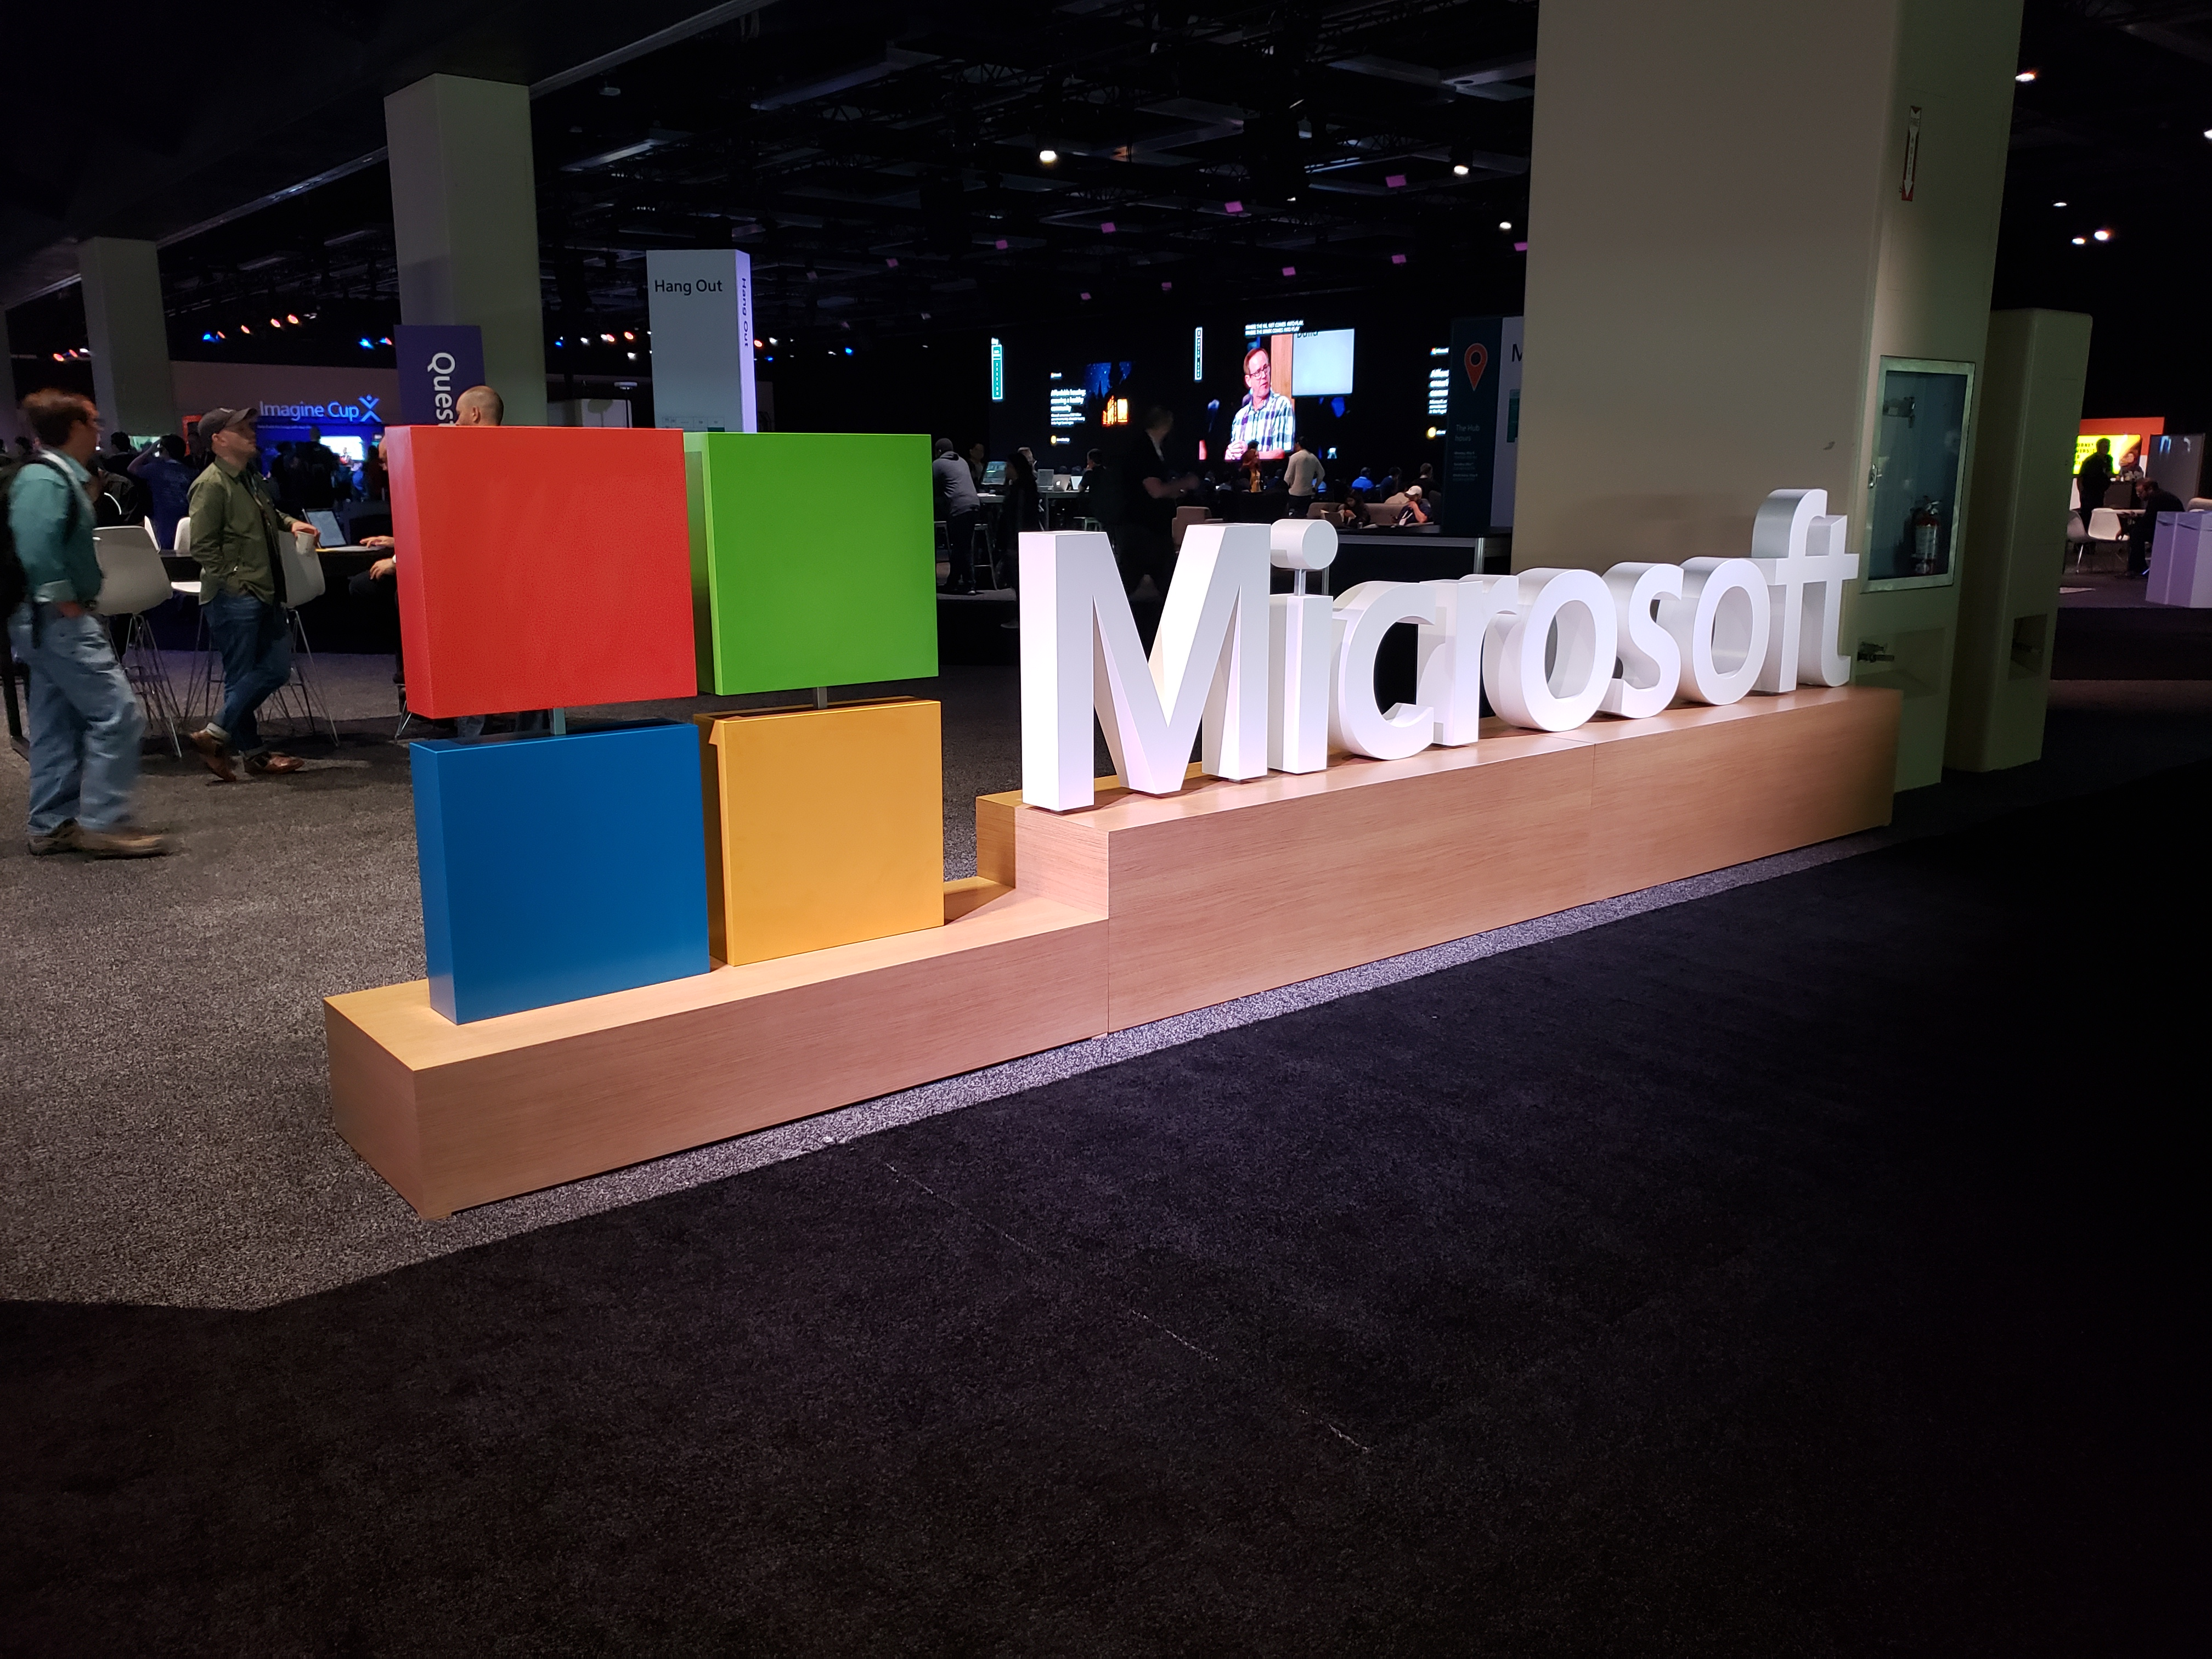 Microsoft Build 2019: More of the New Microsoft Approach